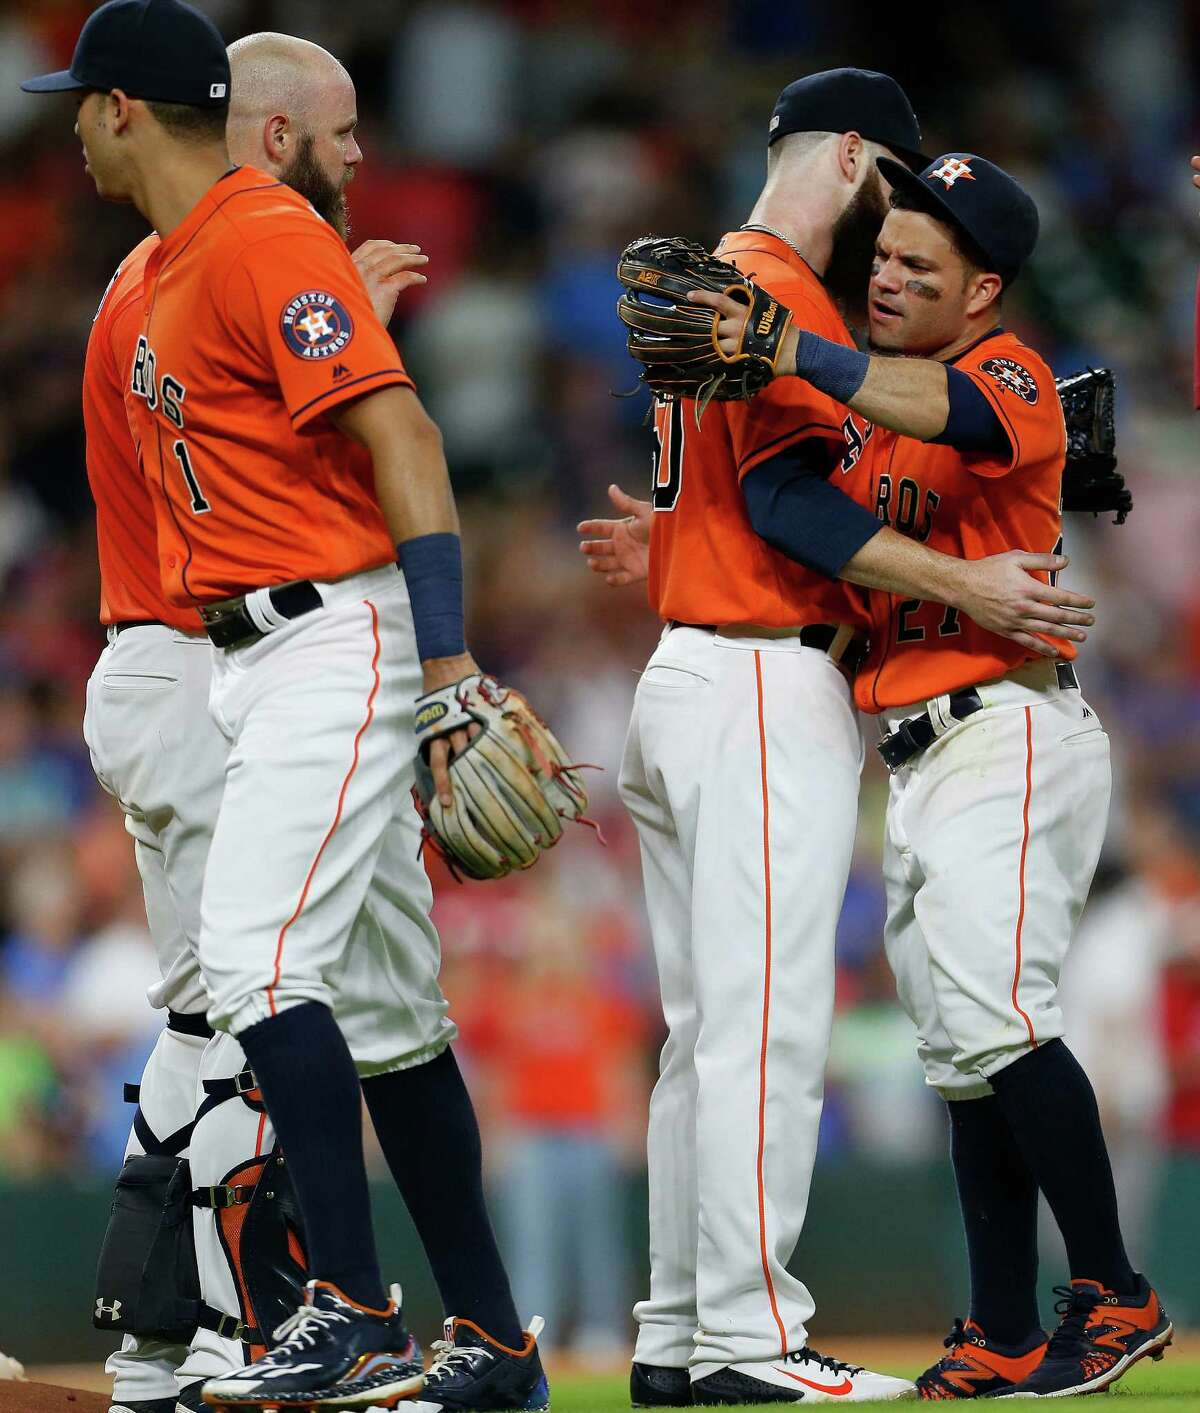 Houston Astros starting pitcher Dallas Keuchel (60) hugs Jose Altuve as they celebrated after the Astros 5-0 win over the Texas Rangers during an MLB game at Minute Maid Park, Friday, Aug. 5, 2016, in Houston.